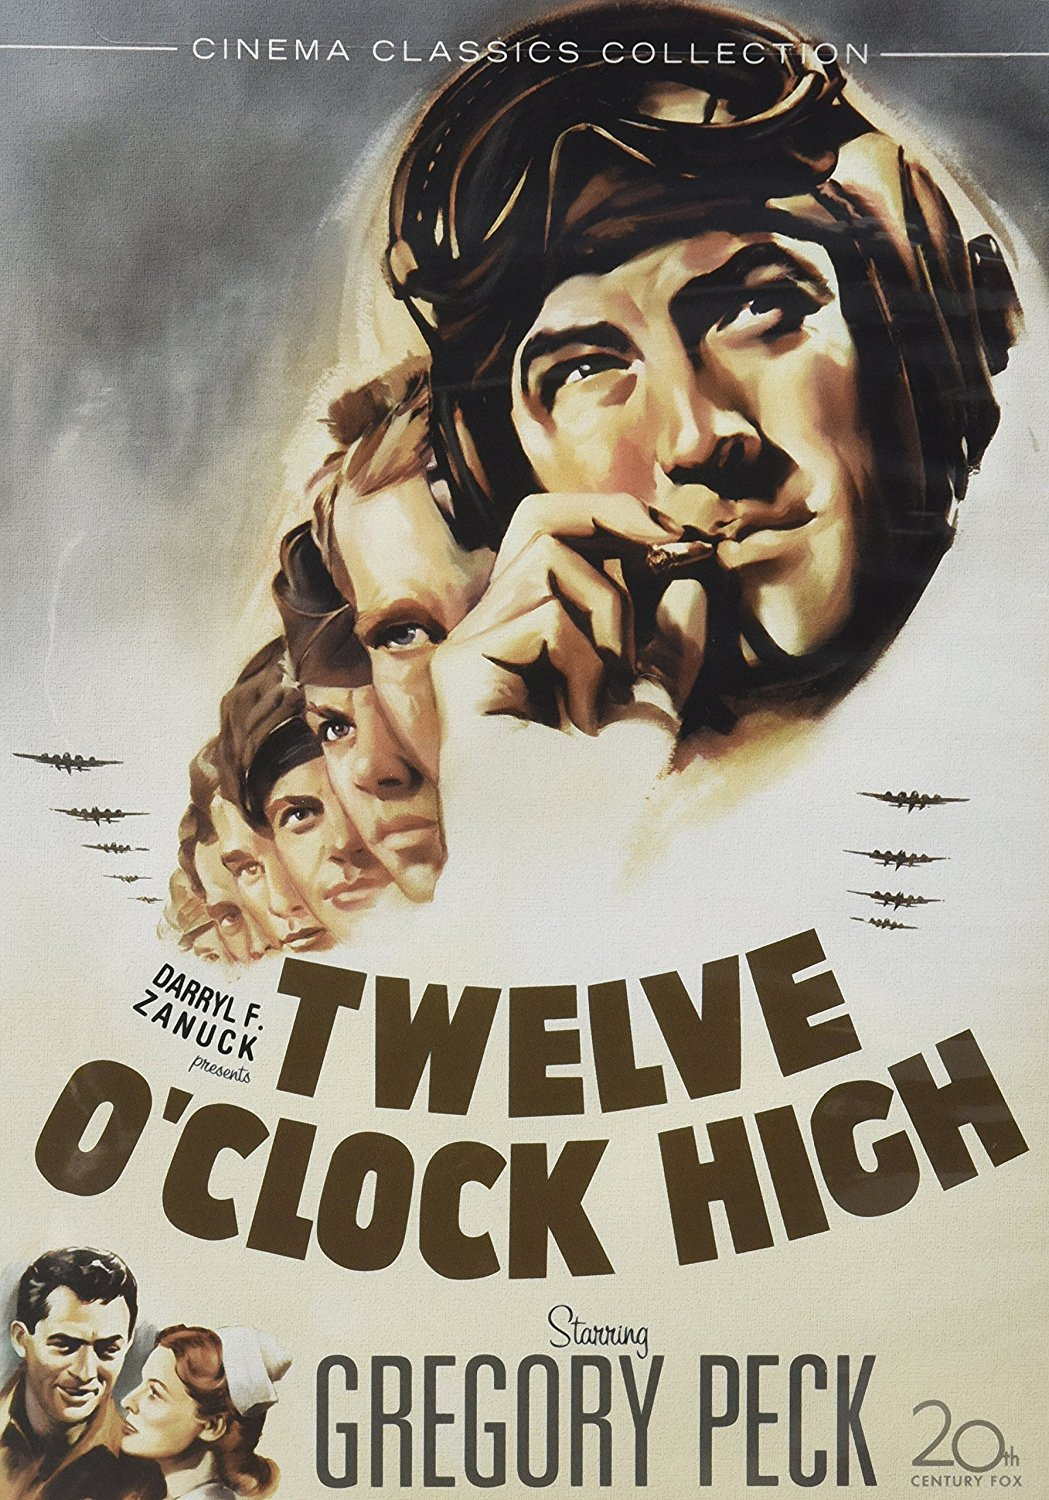 twelve oclock high gregory peck dvd warshowscom